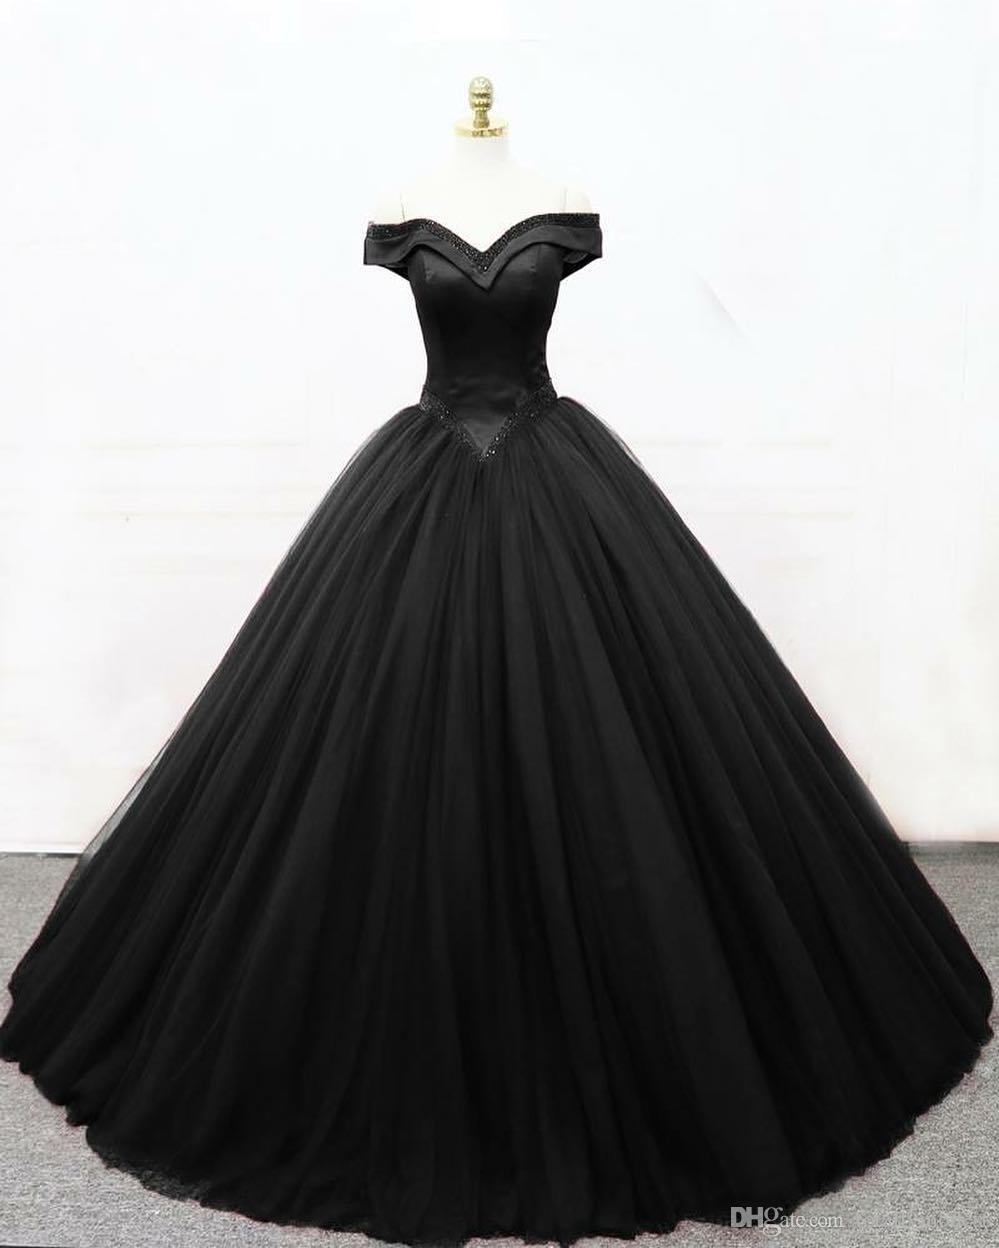 2019 New Ball Gown Black Gothic Wedding Dresses Off the Shoulder Basque Waist Corset Back Floor Length Women Vintage Non White Bridal Gown